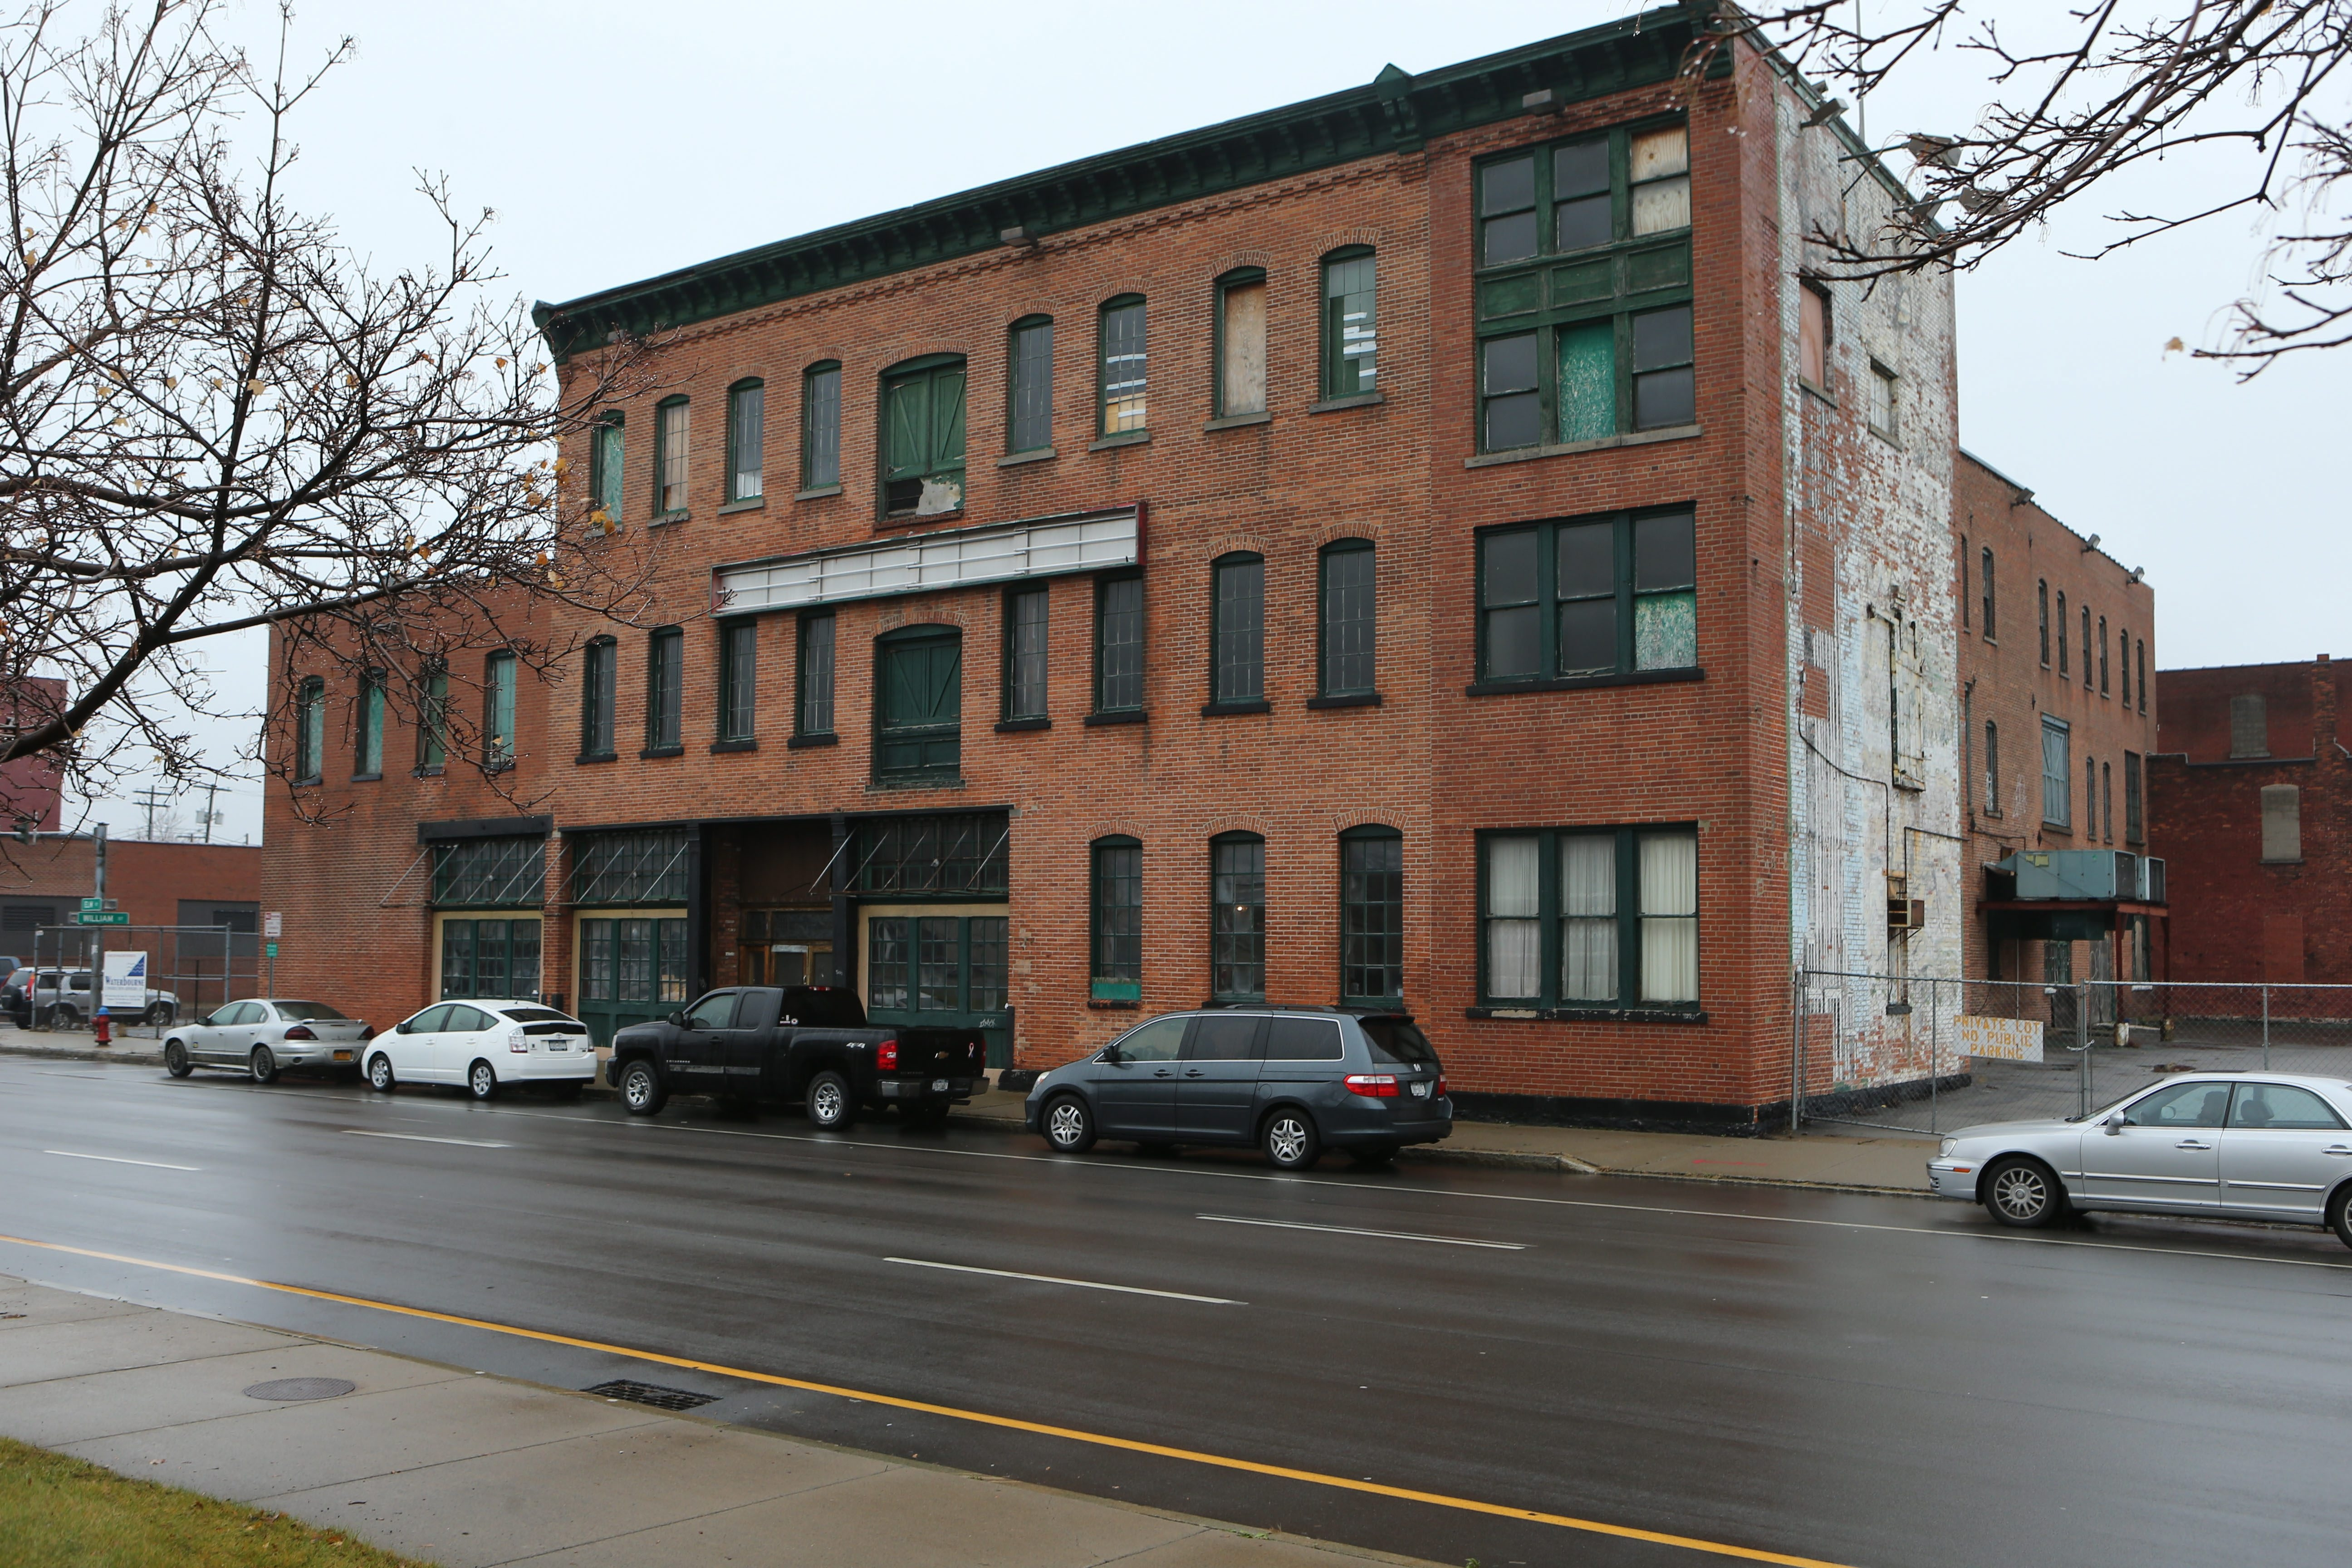 TM Montante is seeking incentives for turning former Planing Mill at 141 Elm into mixed-use facility, including 25 apartments.